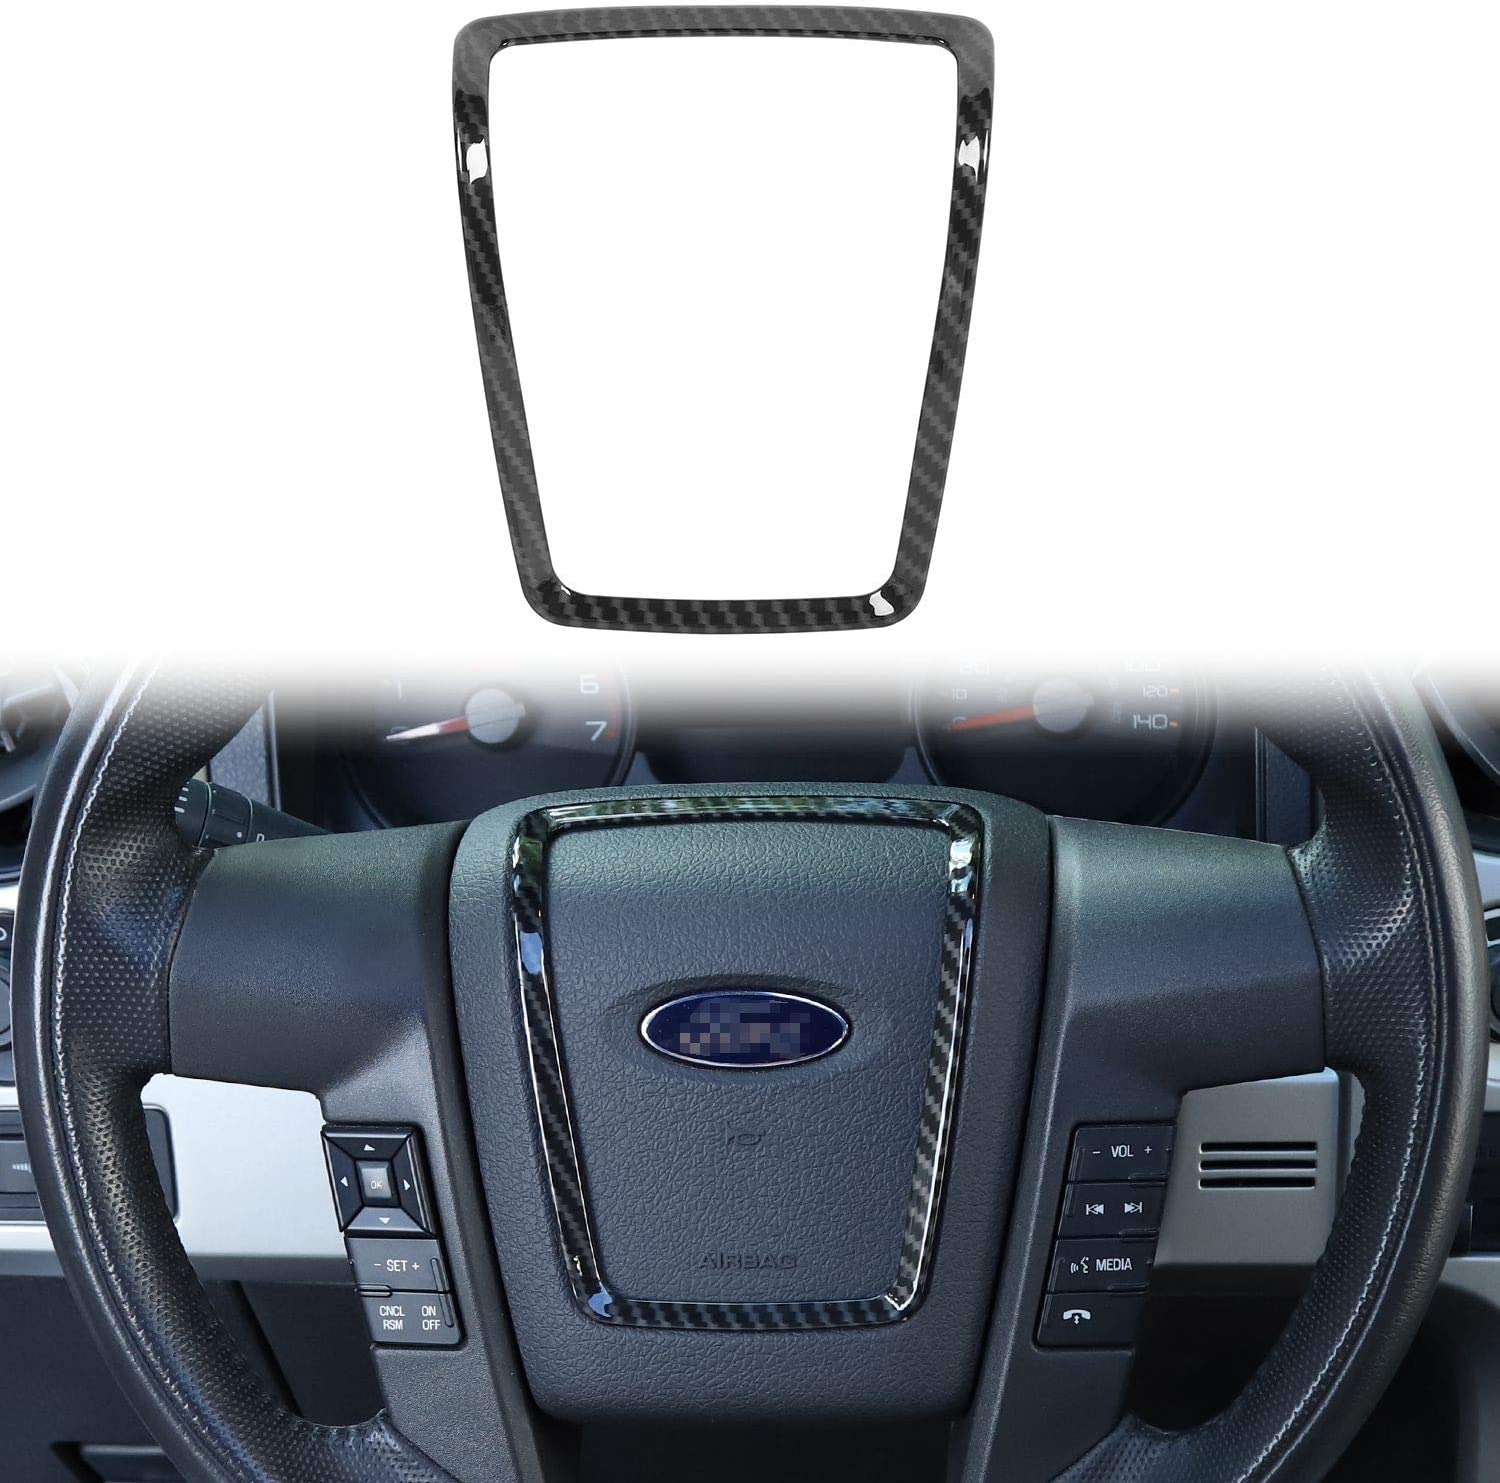 Voodonala for 2009-2014 Ford F150 ABS Carbon Fiber Steering Wheel Accessories Cover Trim, 1 pc